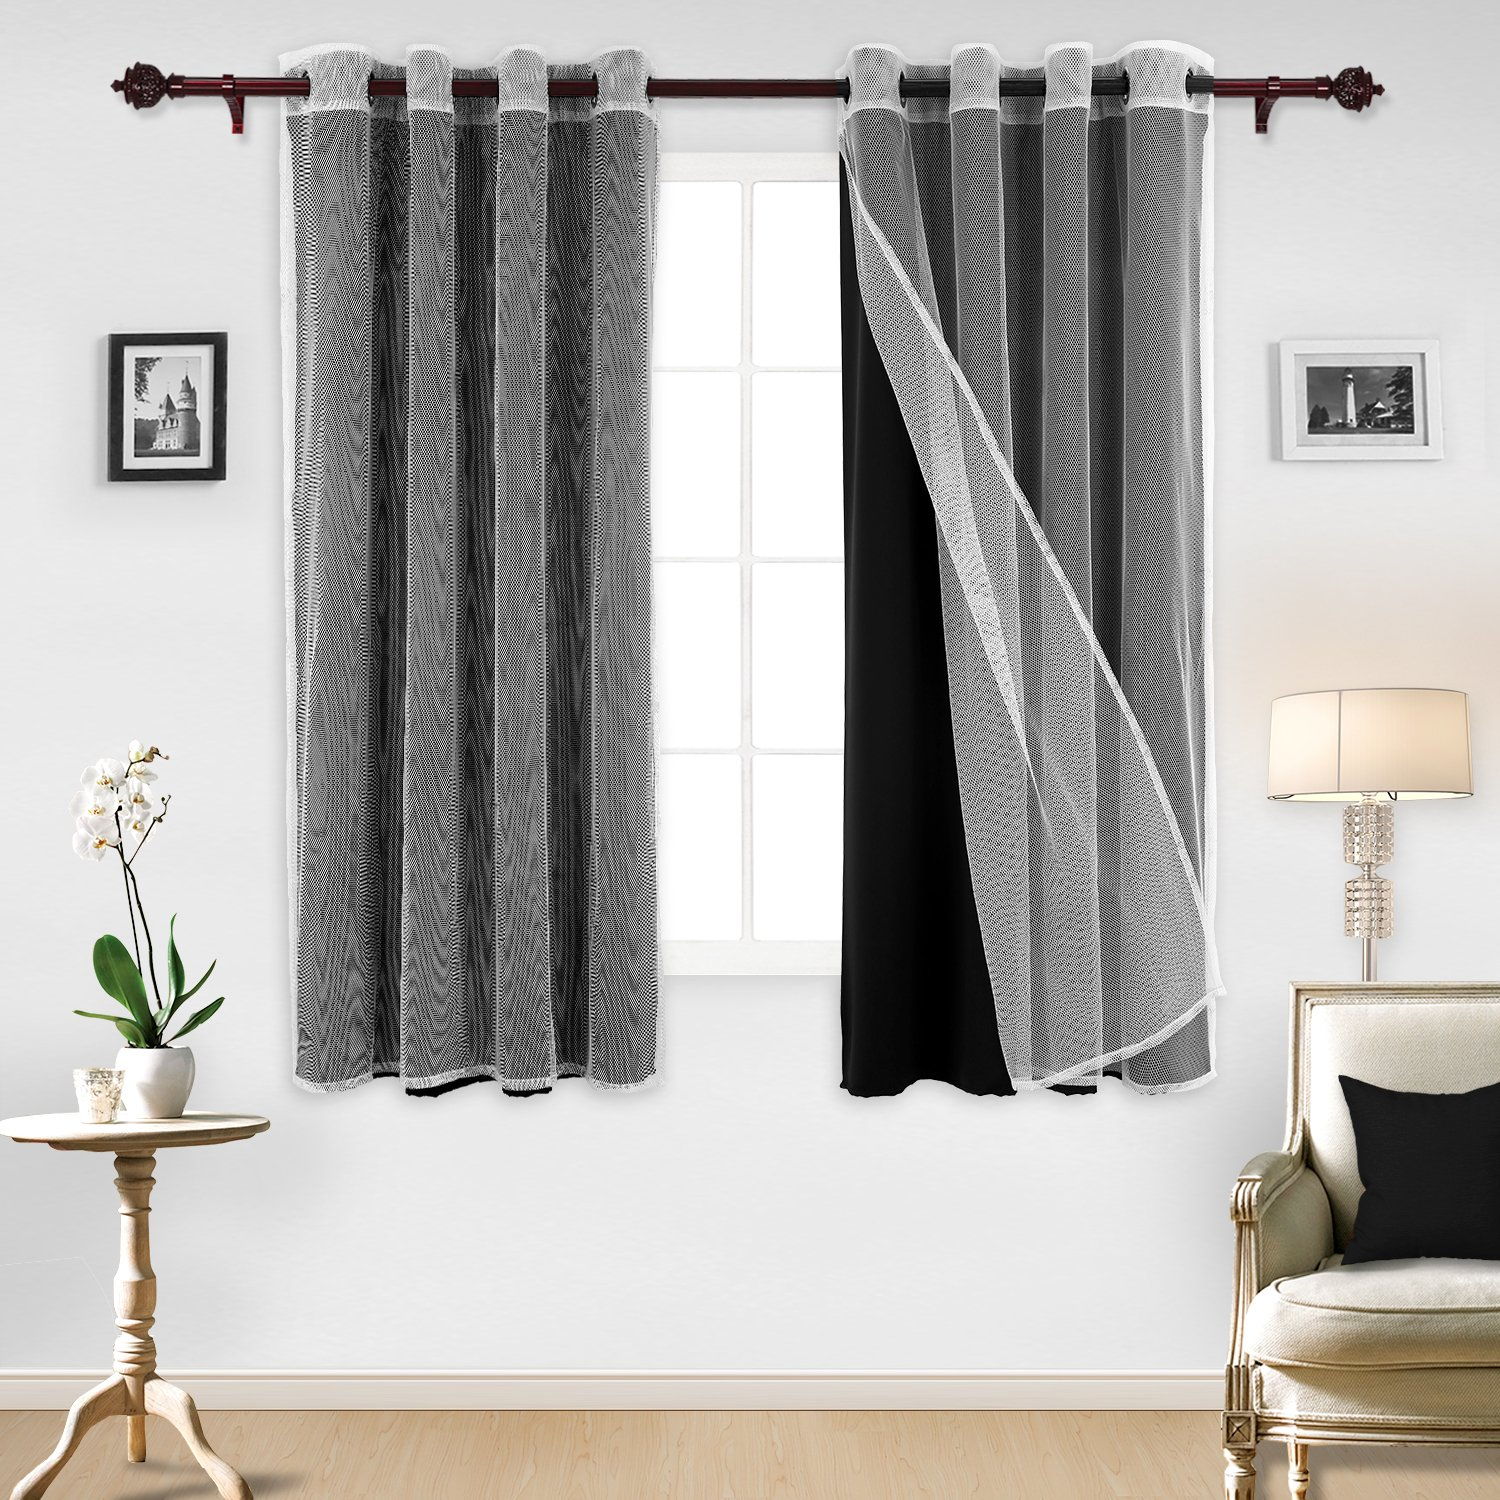 Duvet Covers & Sets Home & Garden Sporting Charcoal Grey Crushed Velvet Elegant Luxury Modern Duvet Cover Set Or Curtains To Reduce Body Weight And Prolong Life